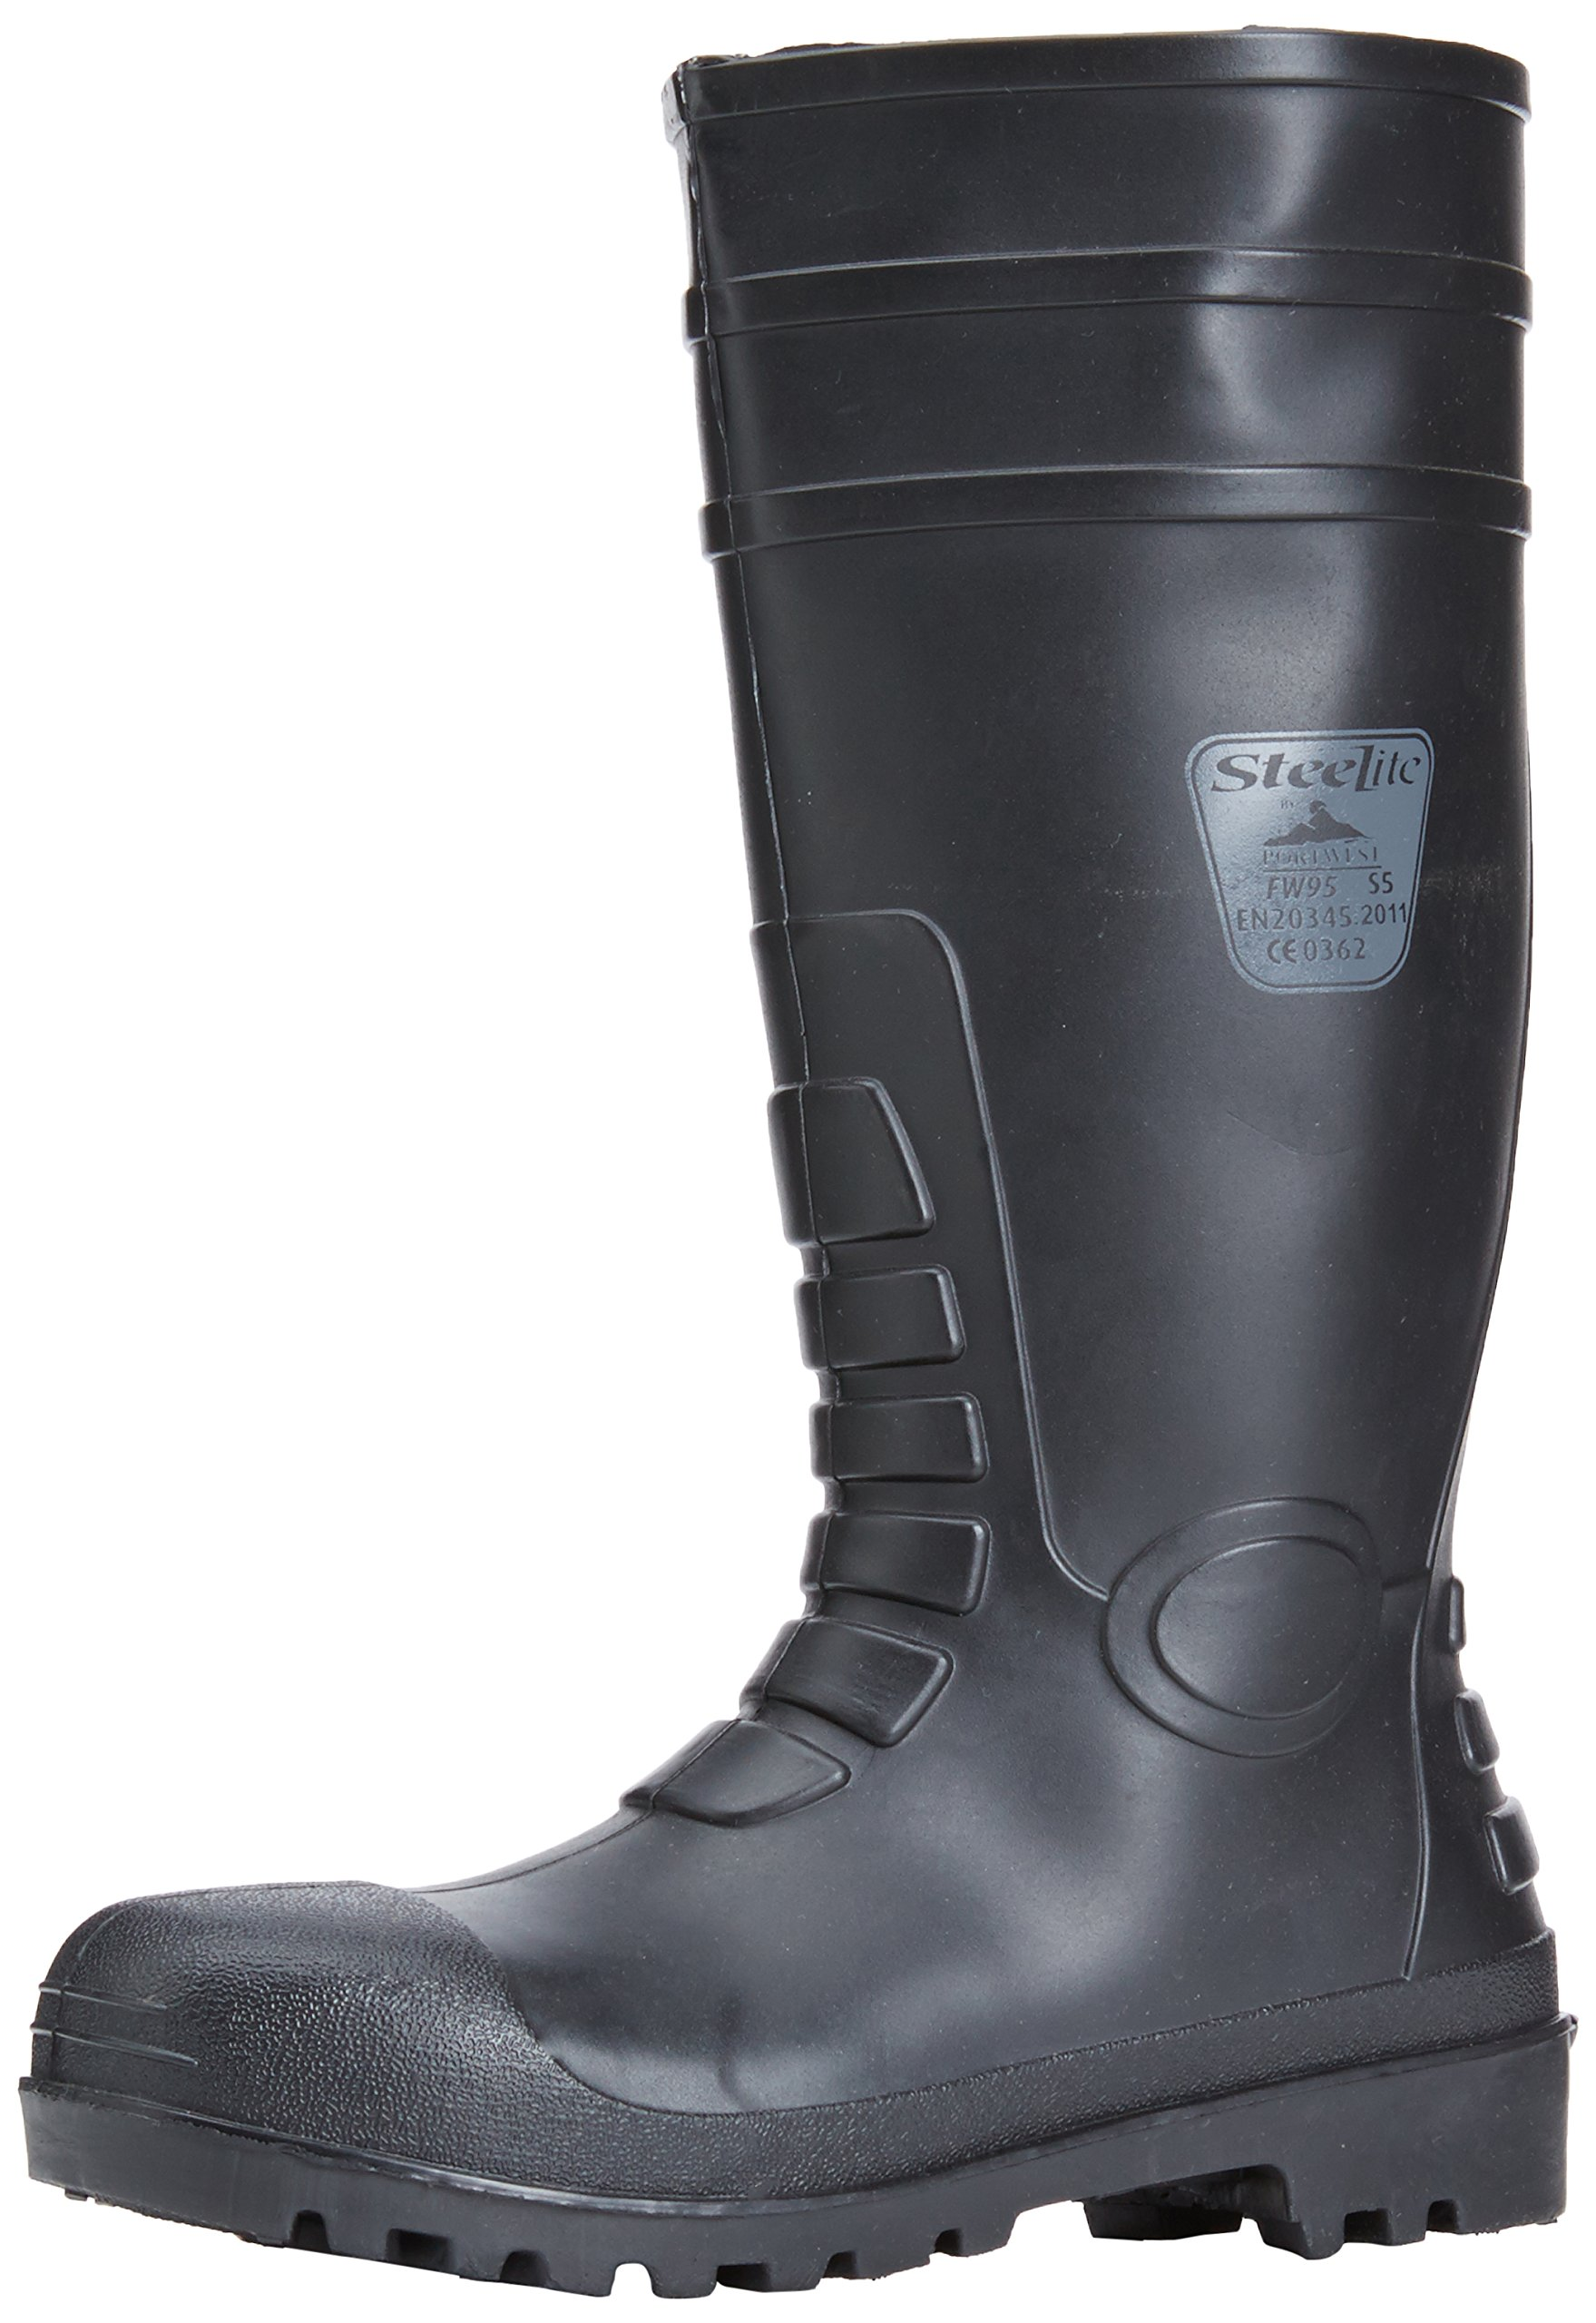 Portwest FW95 Total Safety PVC Waterproof Boot with Protective Steel Toecap ASTM, 11, Black